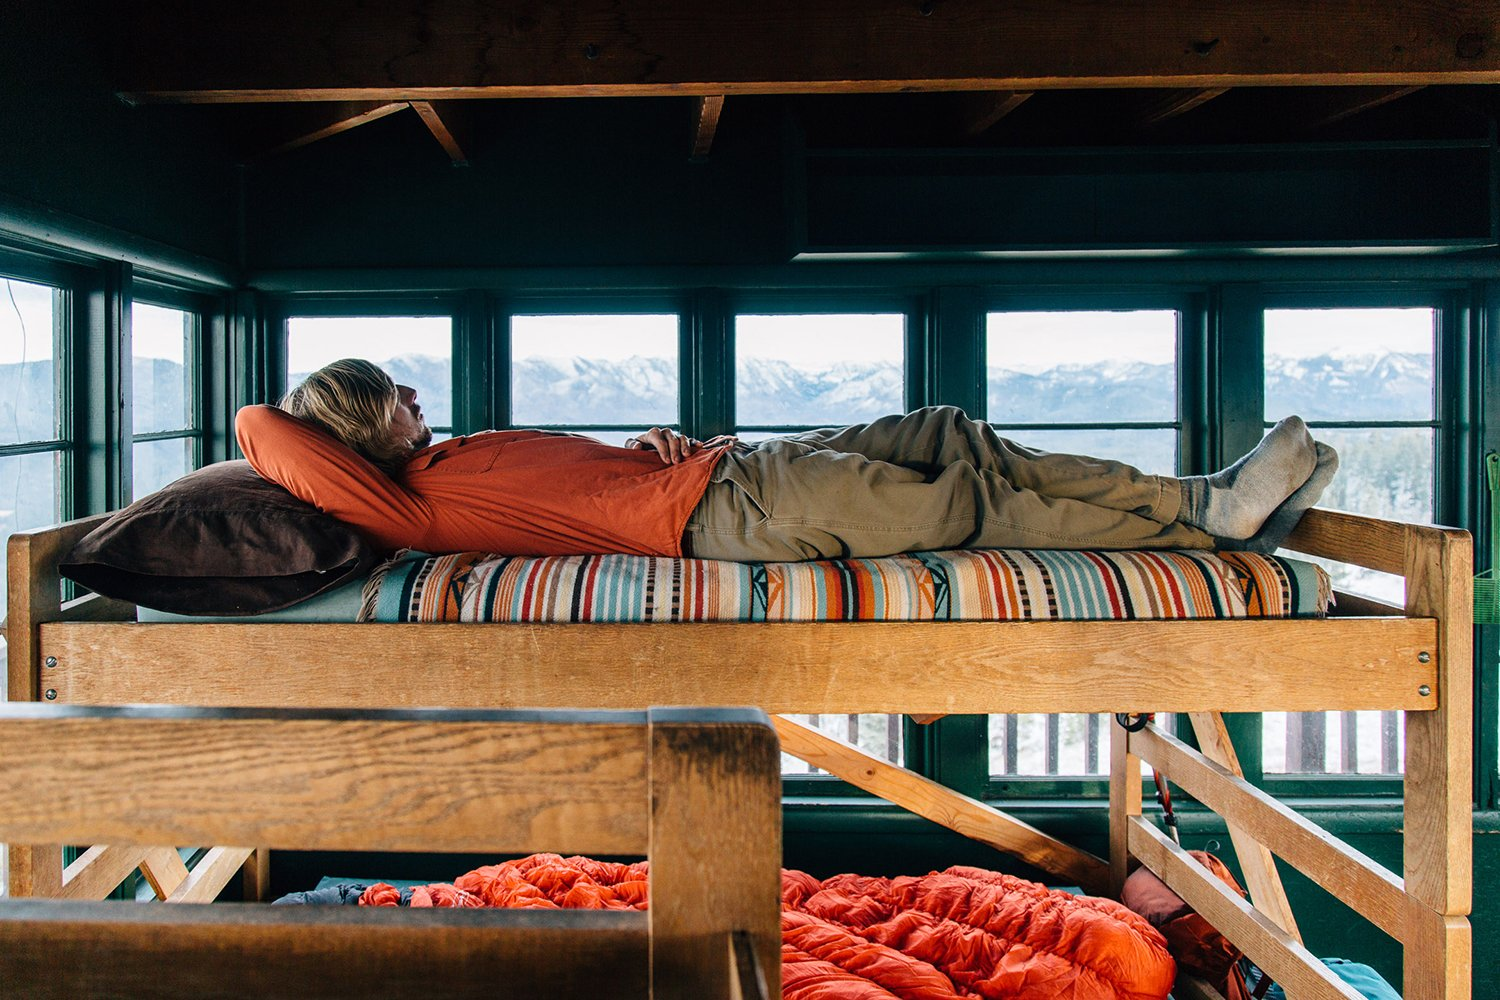 Photo 7 of 7 in A Fire Lookout Tower From the 1930's is Preserved as a Rustic Getaway